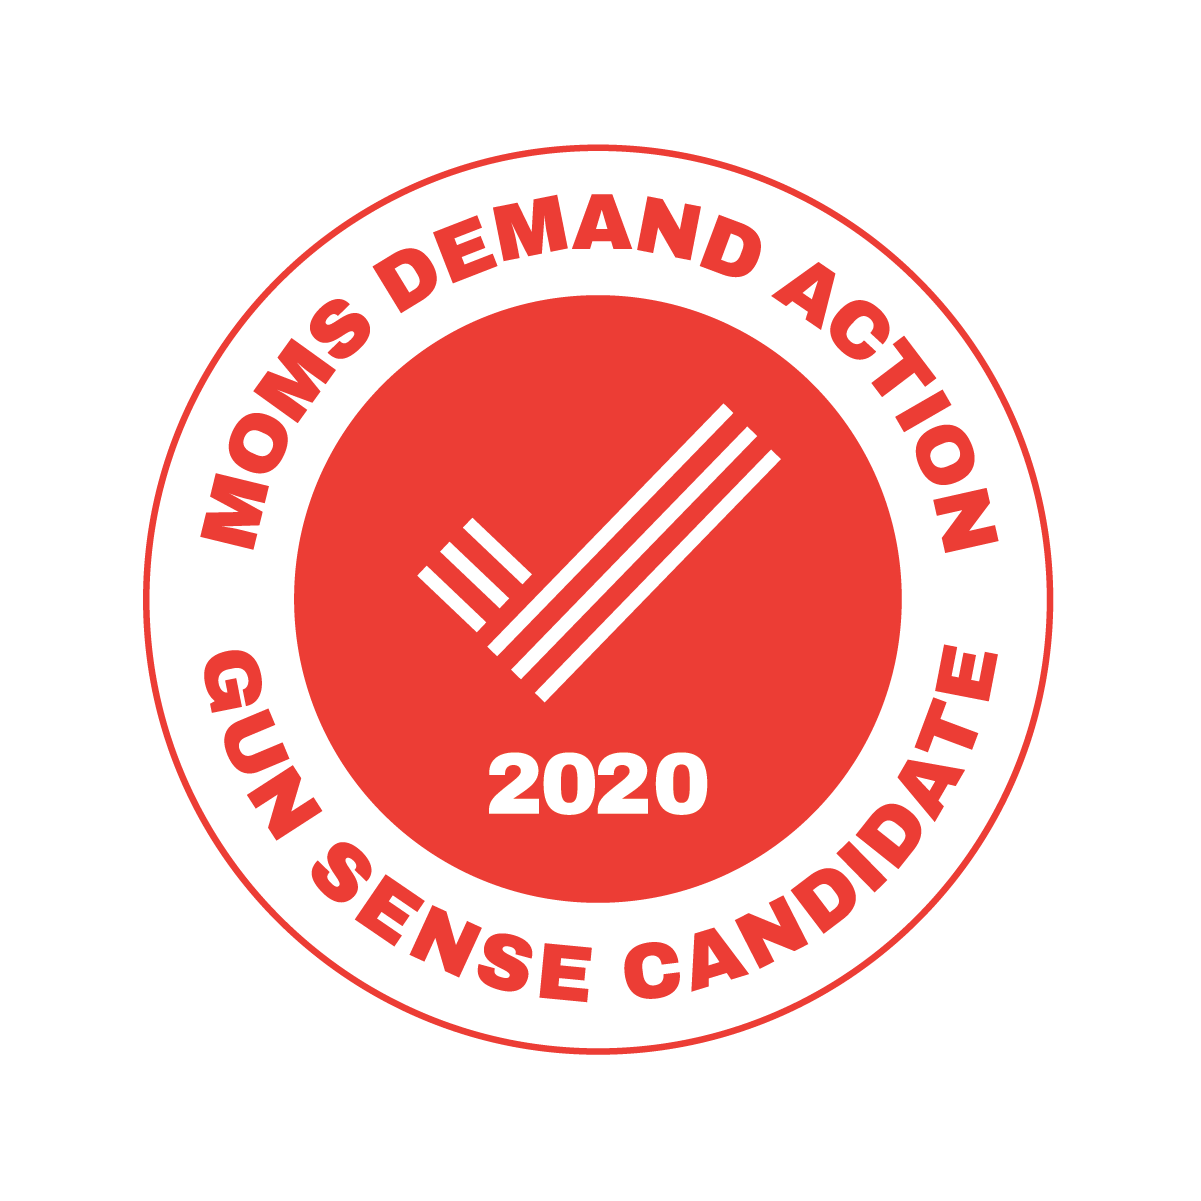 2020 Moms Demand Action Gun Sense Candidate